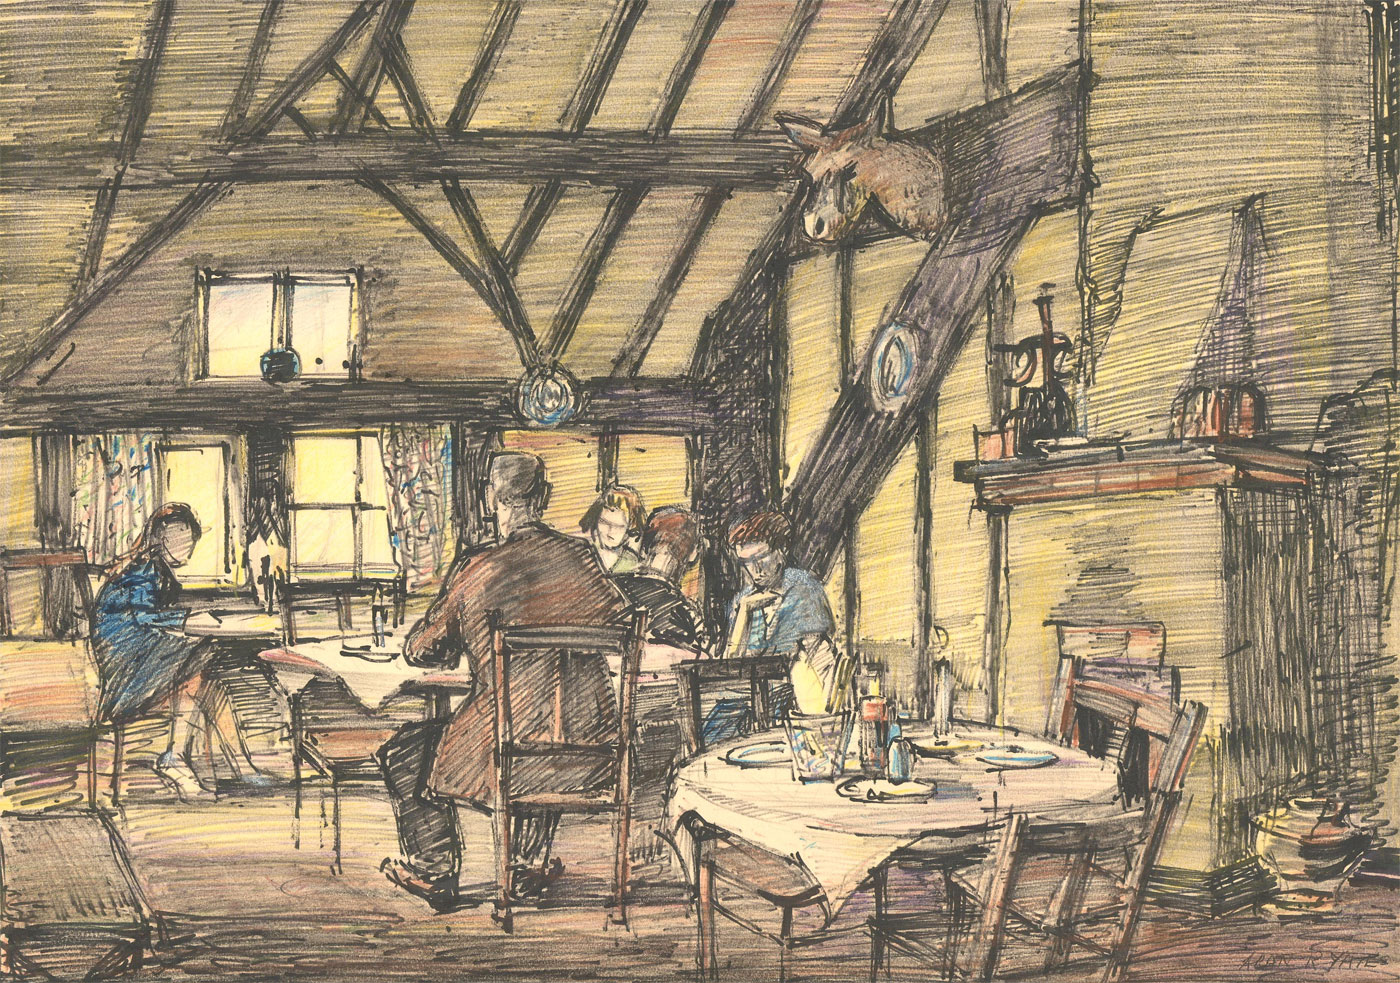 Alan Yates ARBSA - Mid 20th Century Pen and Ink Drawing, Refreshments